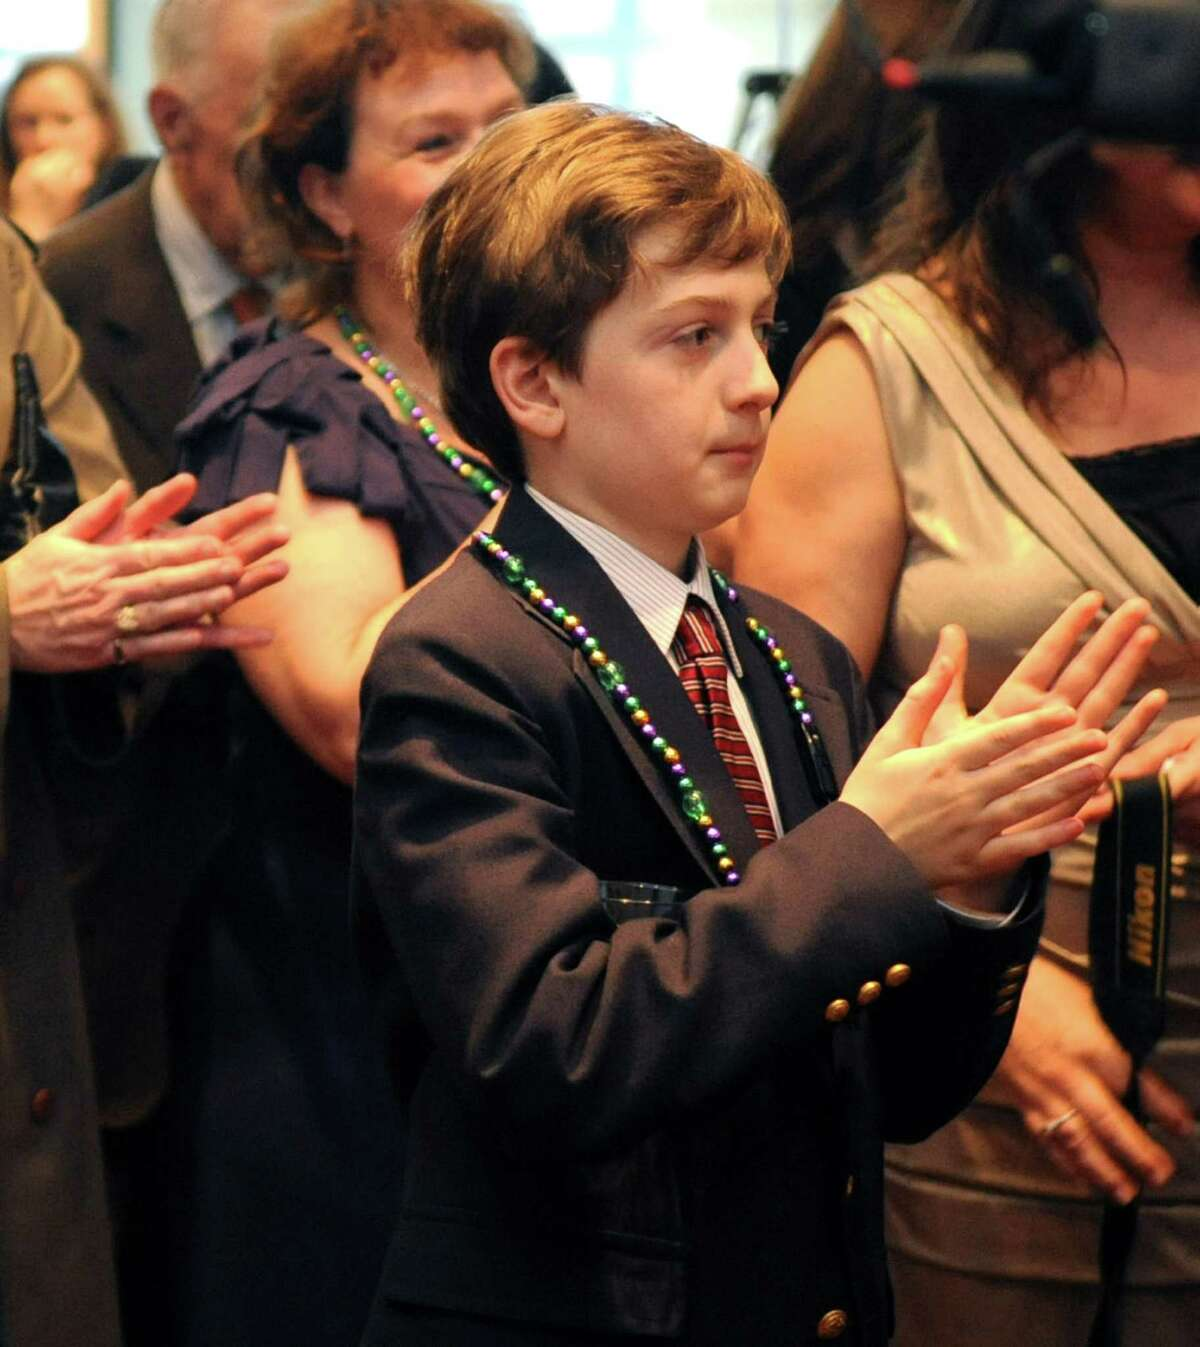 Greenwich resident Andrew Marella, 12, was diagnosed with Niemann-Pick Type C, a rare and fatal degenerative disease, when he was 5. Recently he was accepted into a promising clinical trial for a new treatment for NPC.